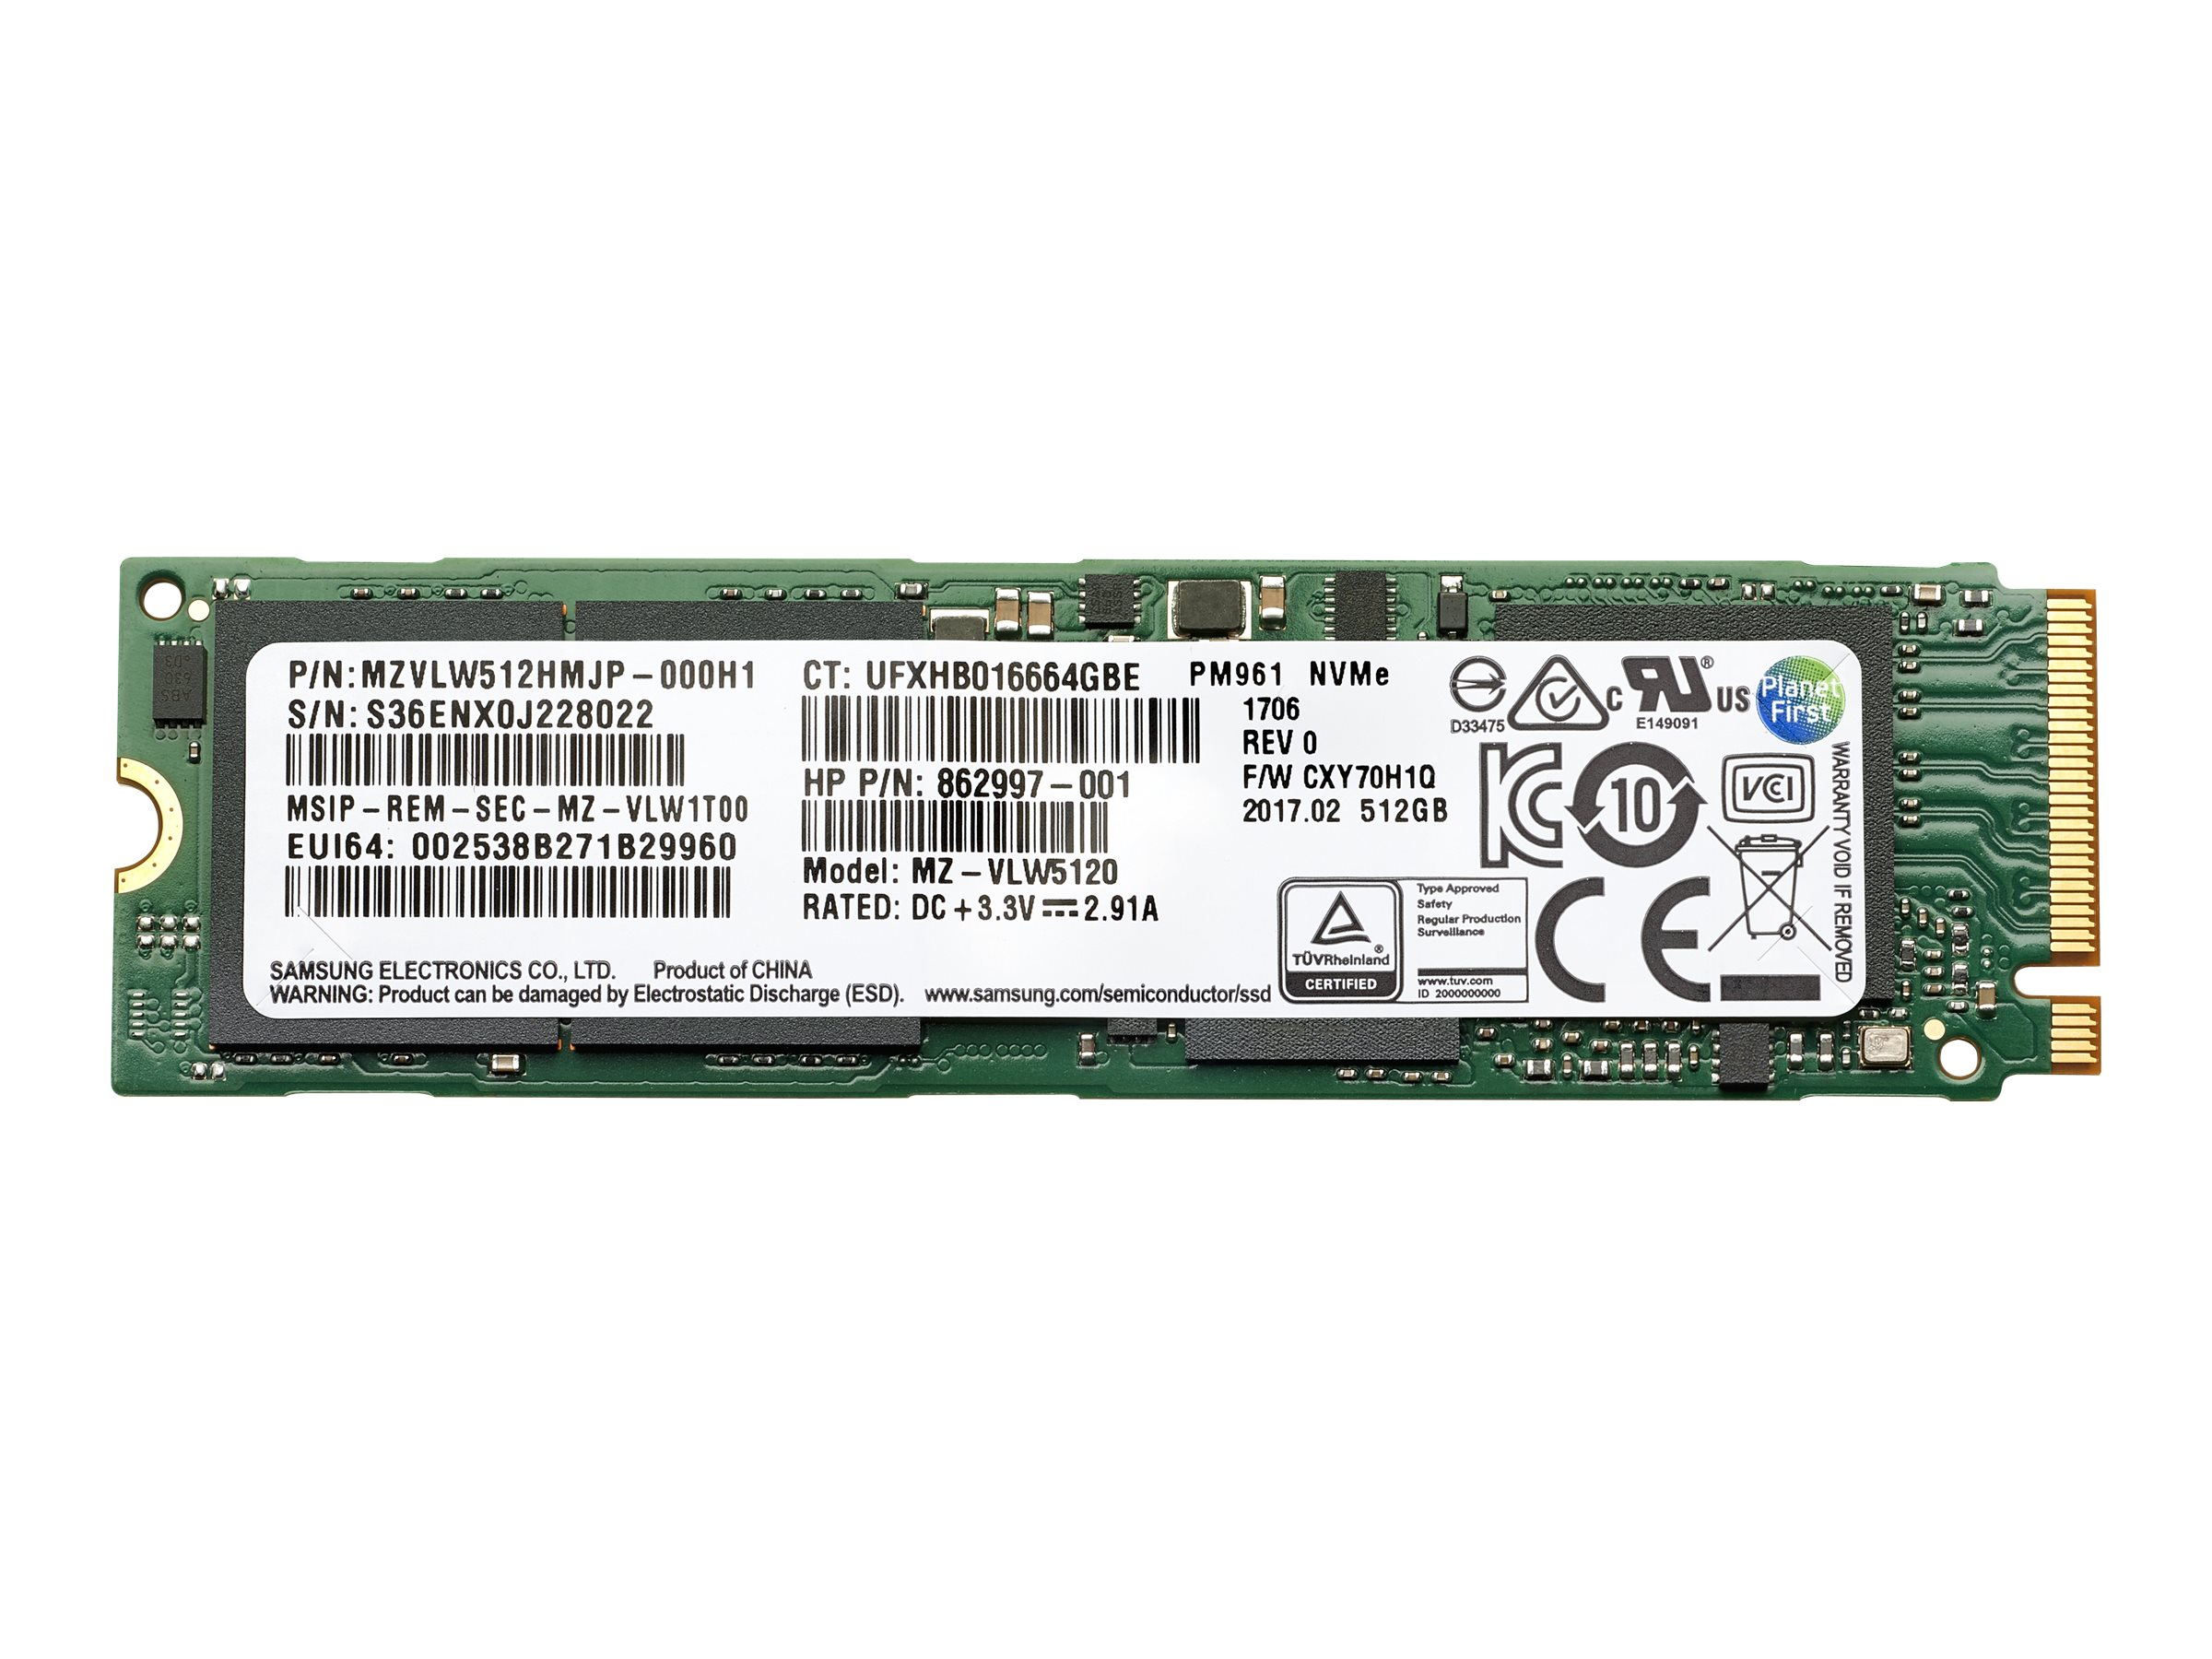 HP - solid state drive - 1 TB - PCI Express 3.0 x4 (NVMe) -